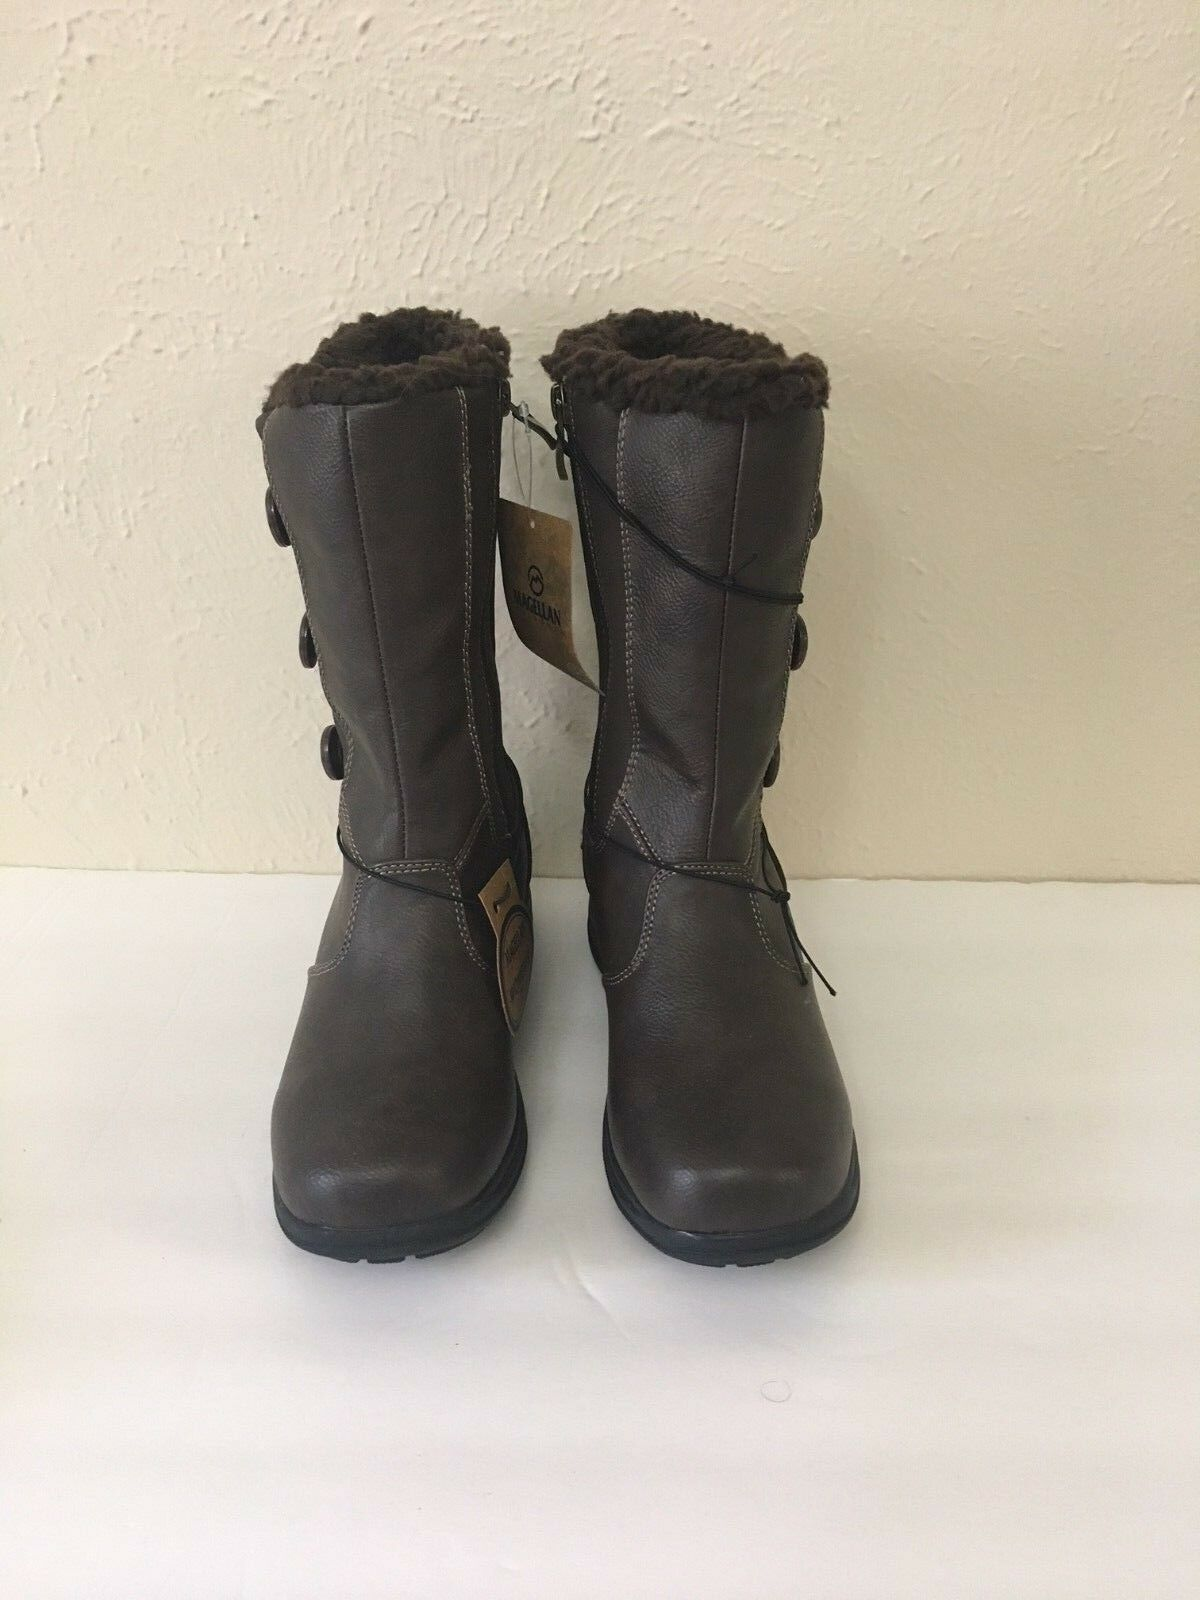 Magellan Women's Lined Winter Boots New with Tags Size 7